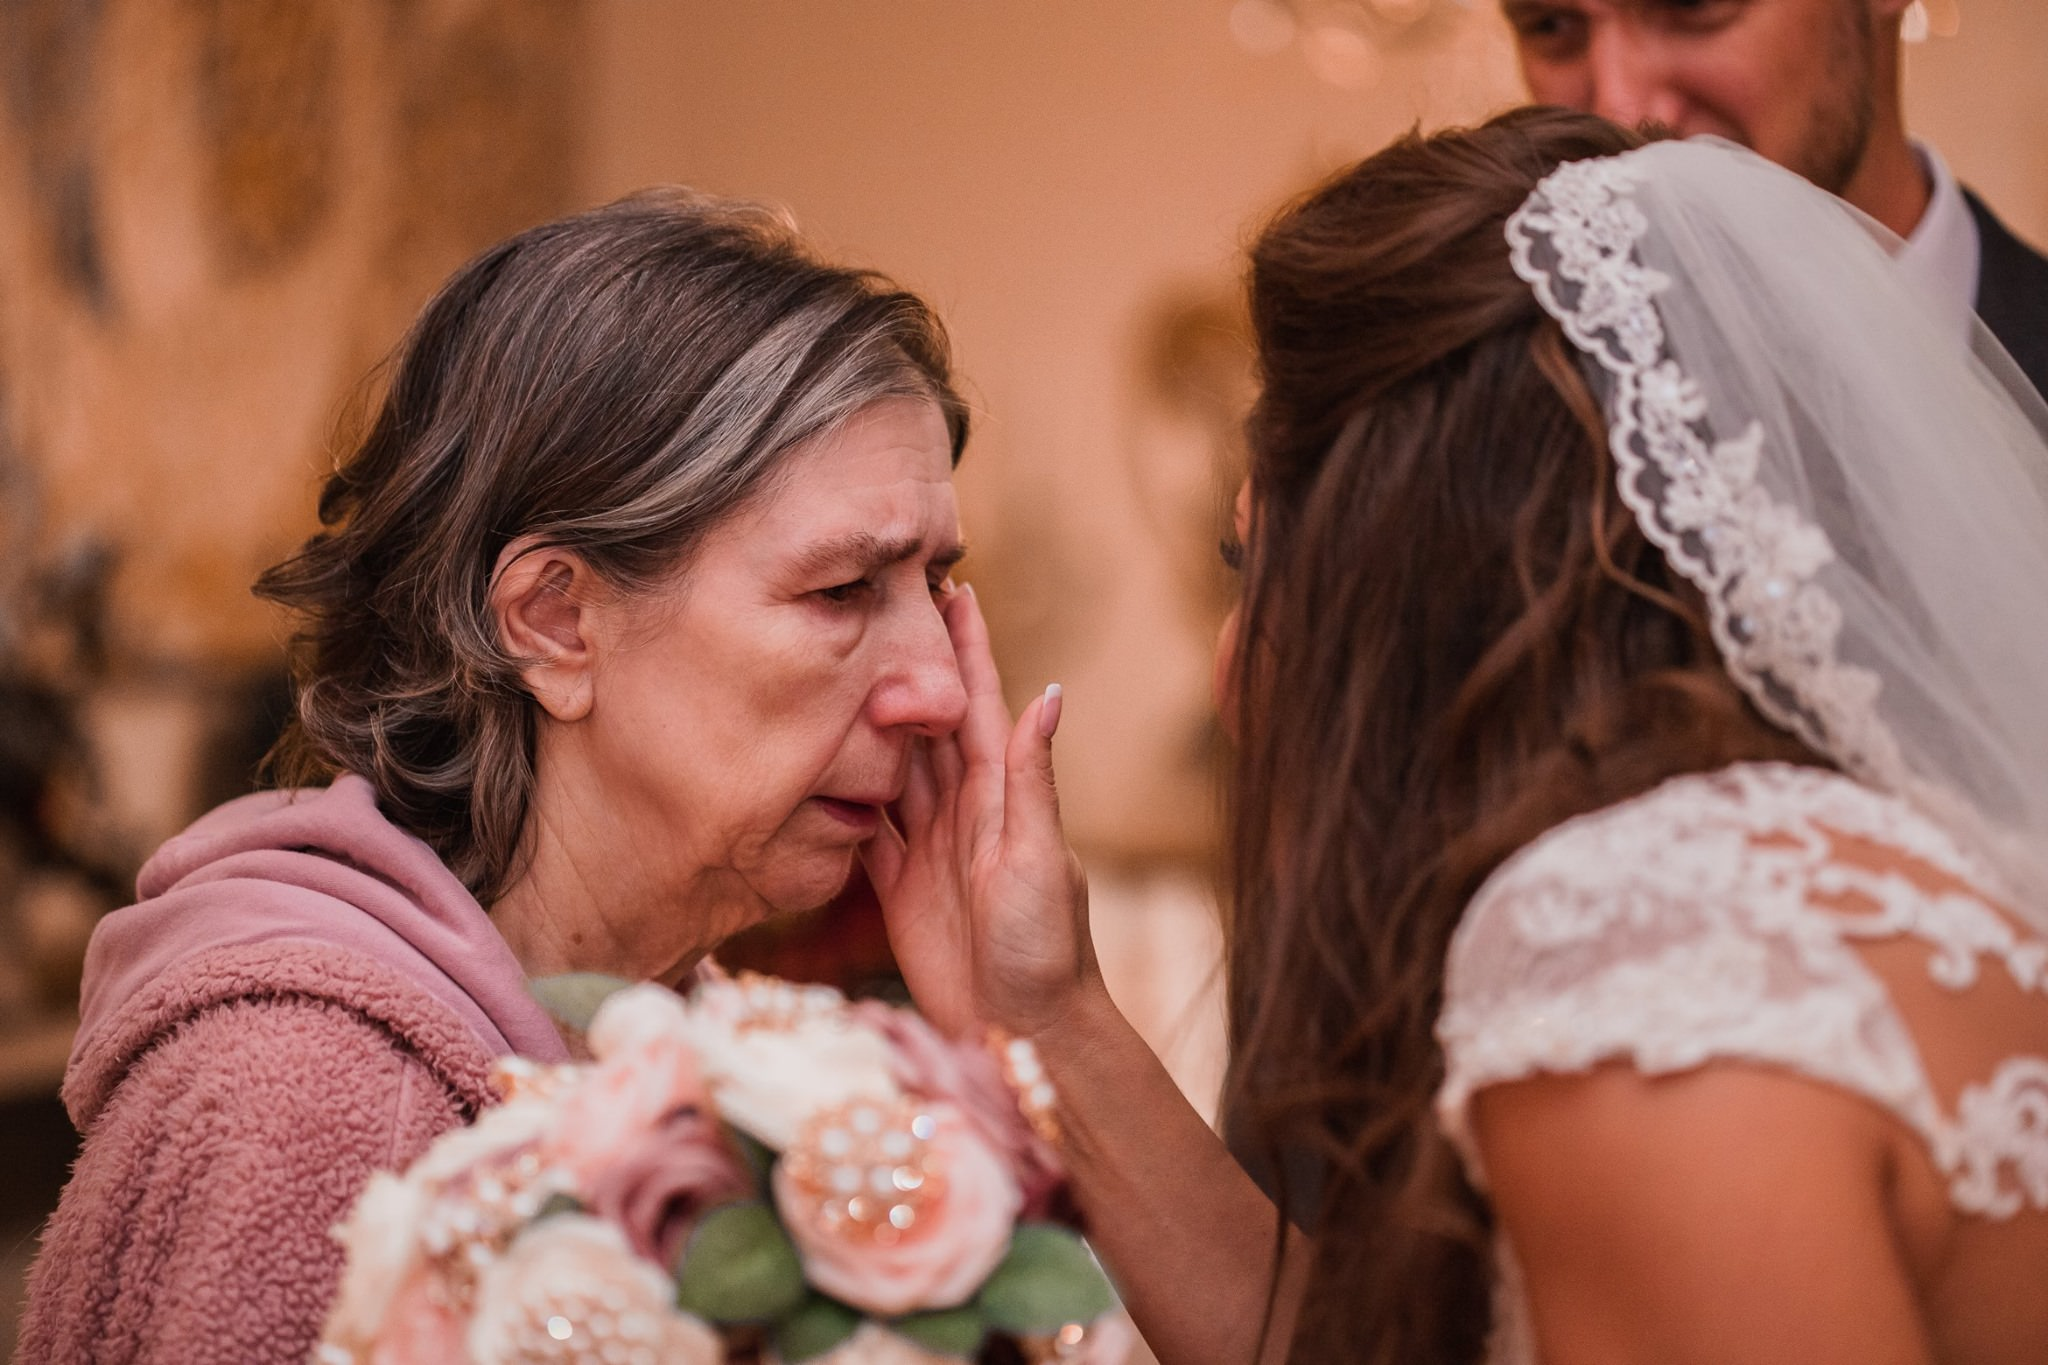 the bride wipes the tears off from her mother's face